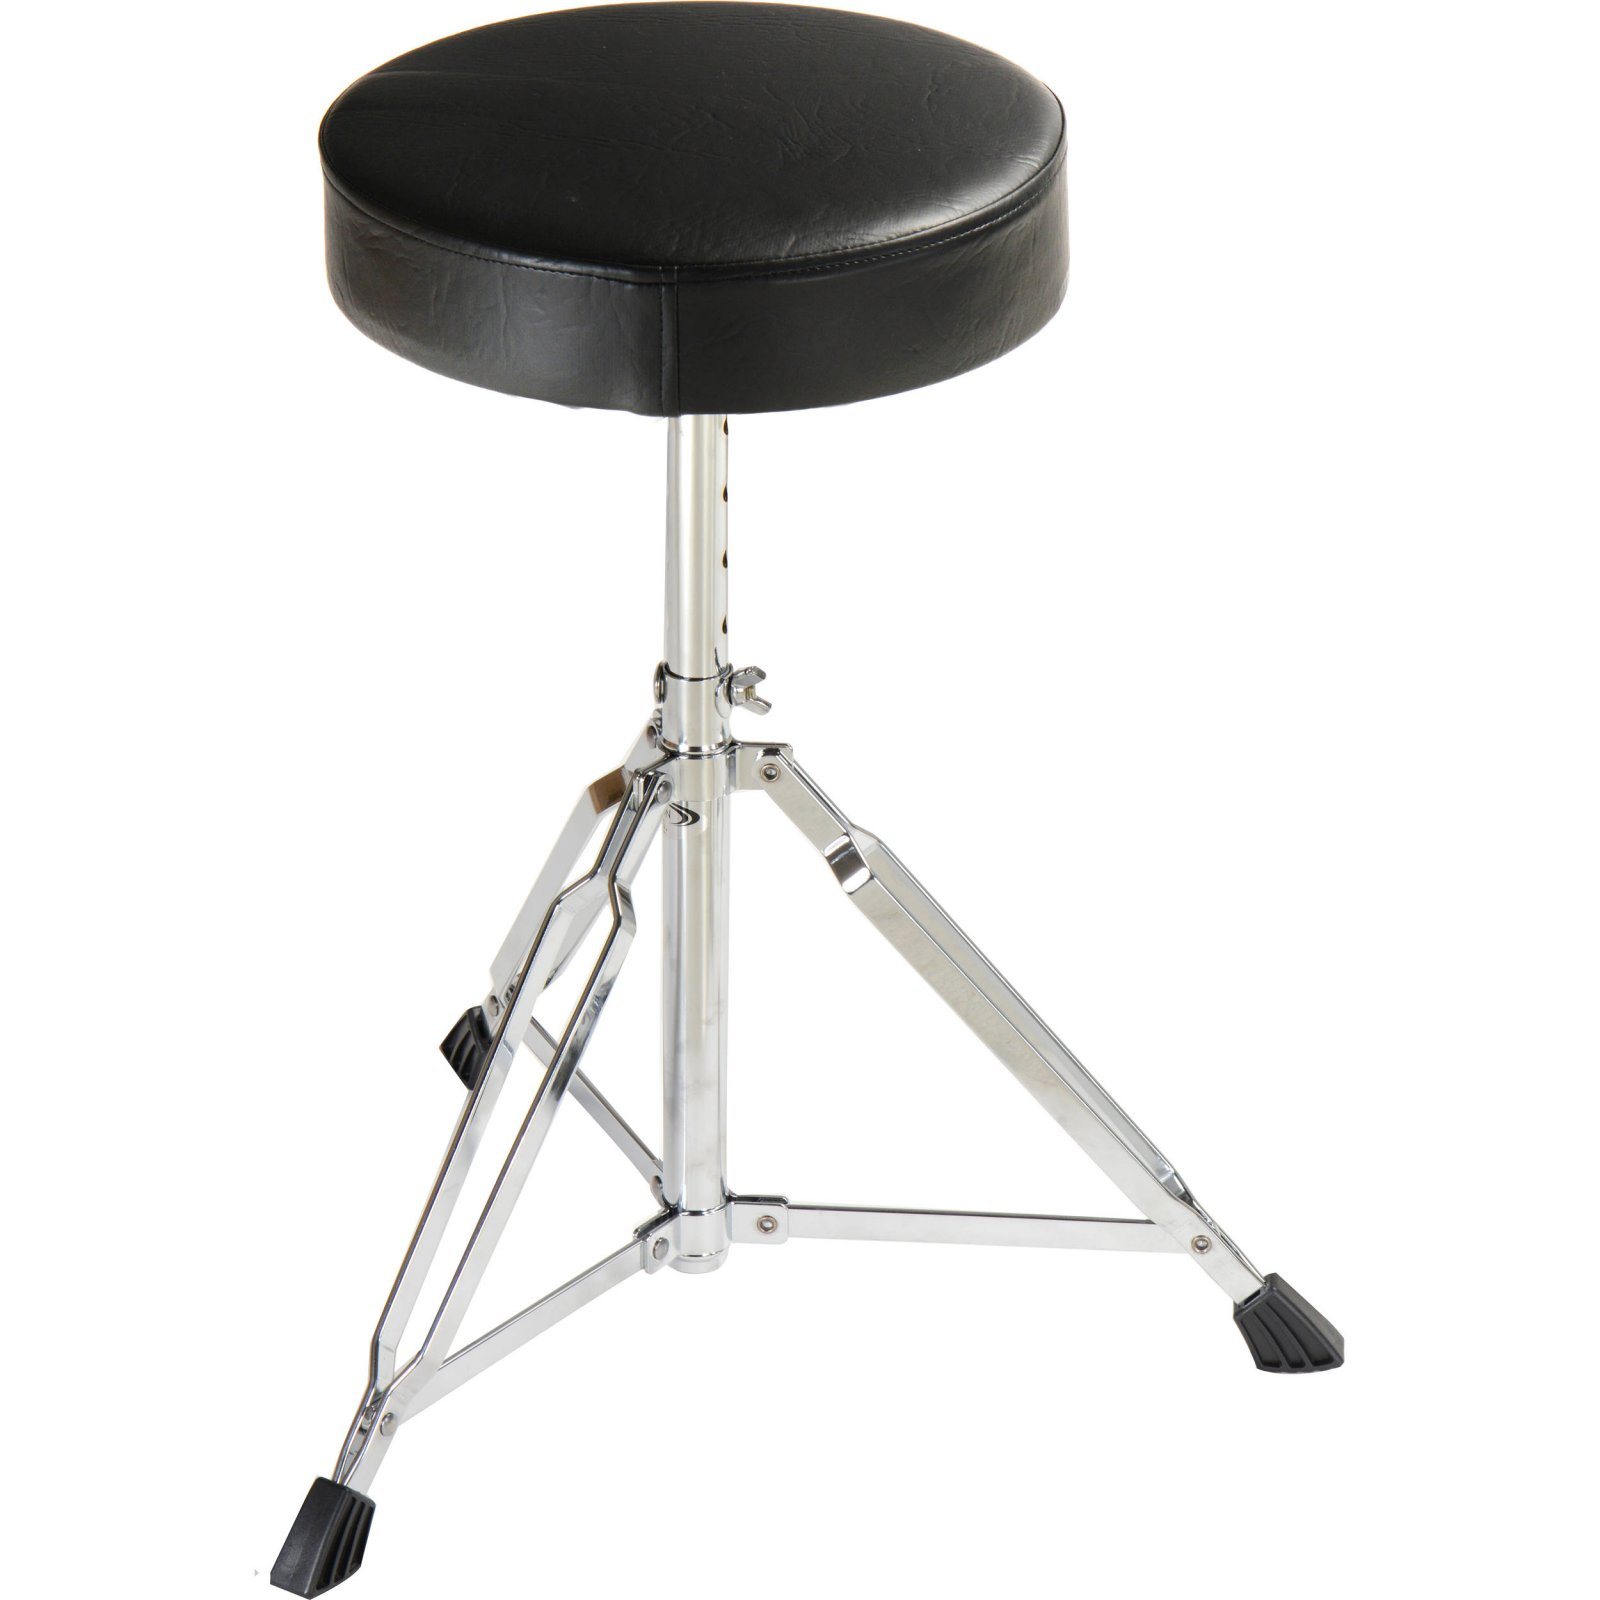 PERCUSSION PLUS DRUM THRONE DOUBLE BRACED (900T)